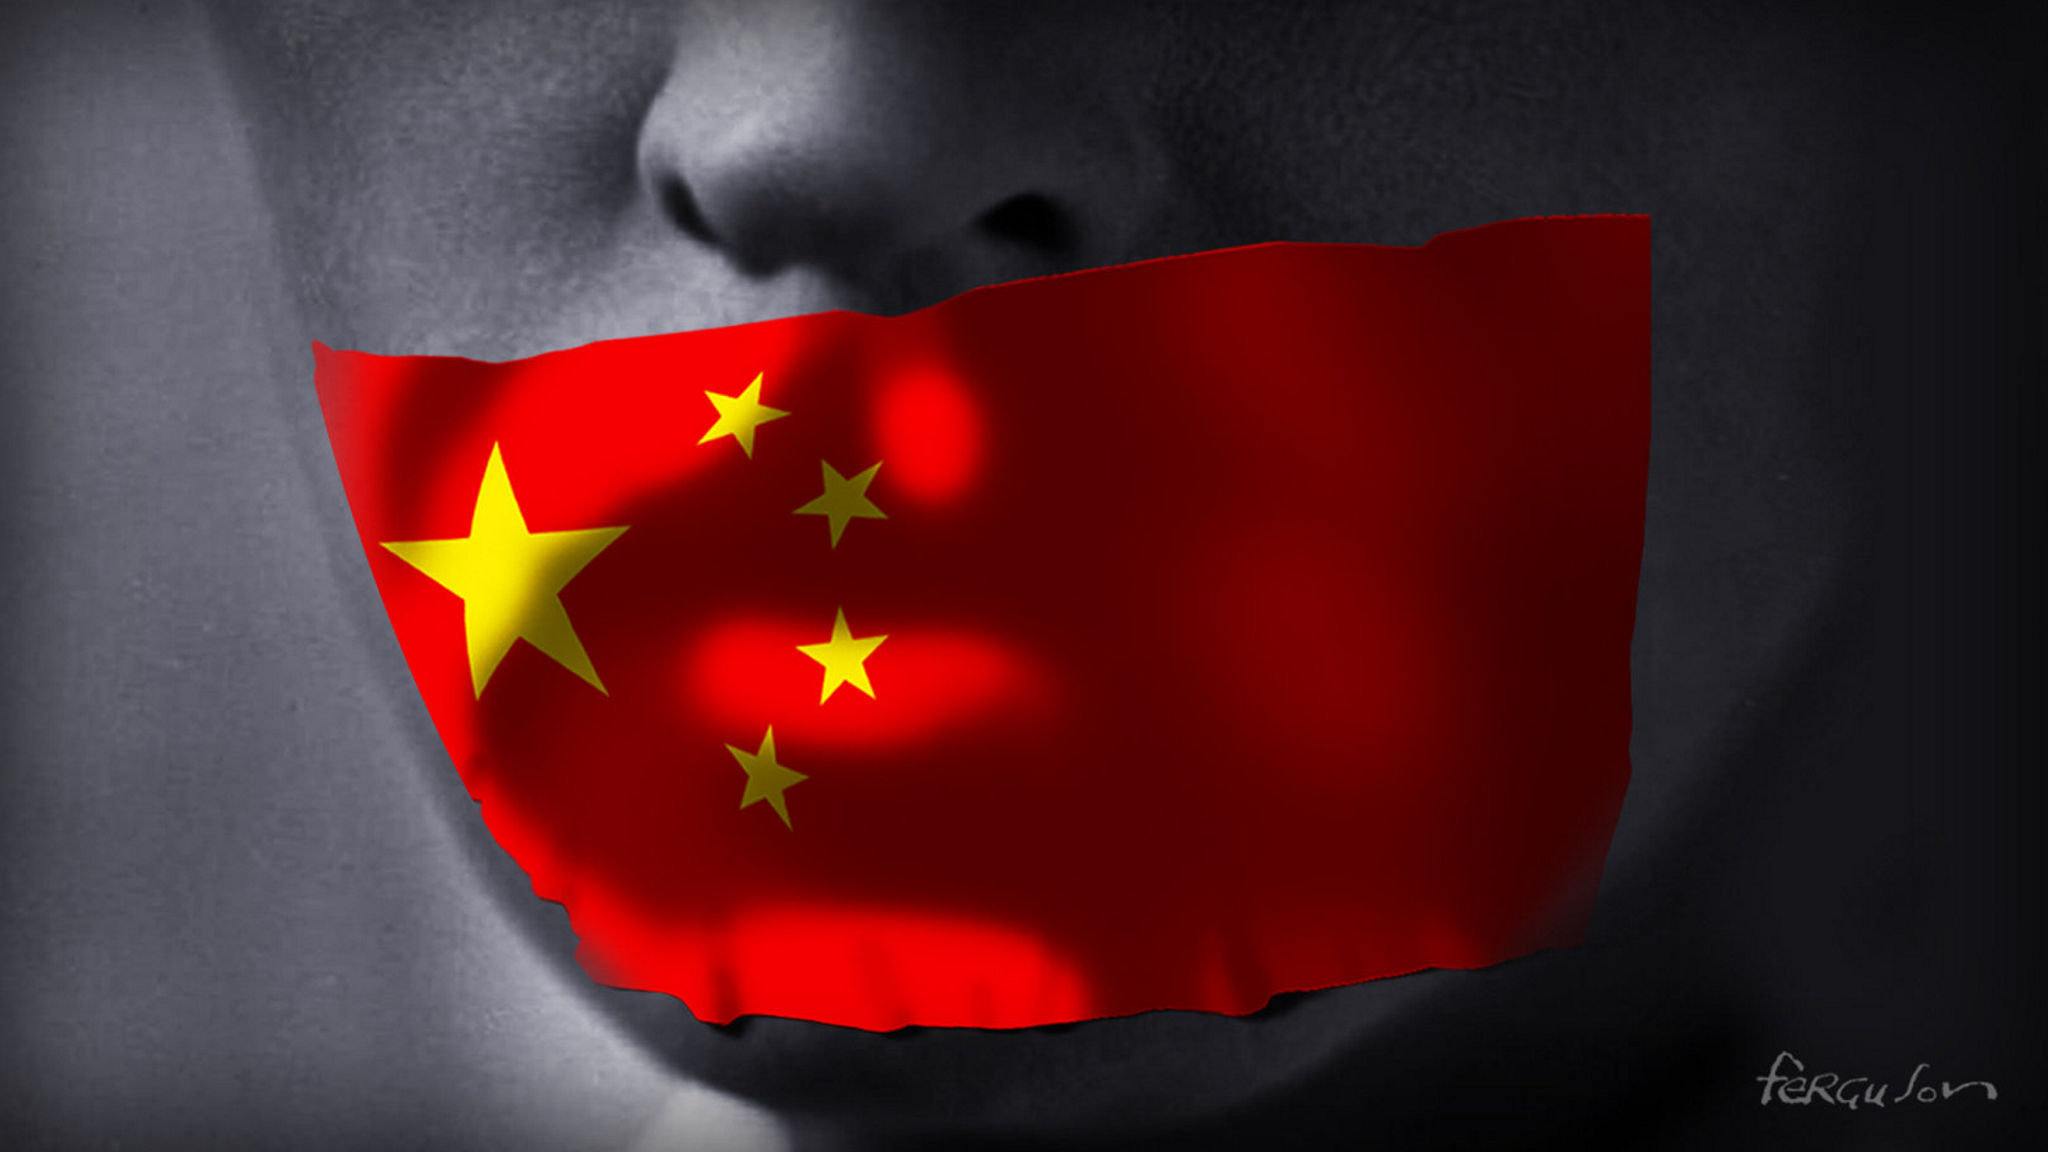 Chinese censorship is spreading beyond its borders | Financial Times